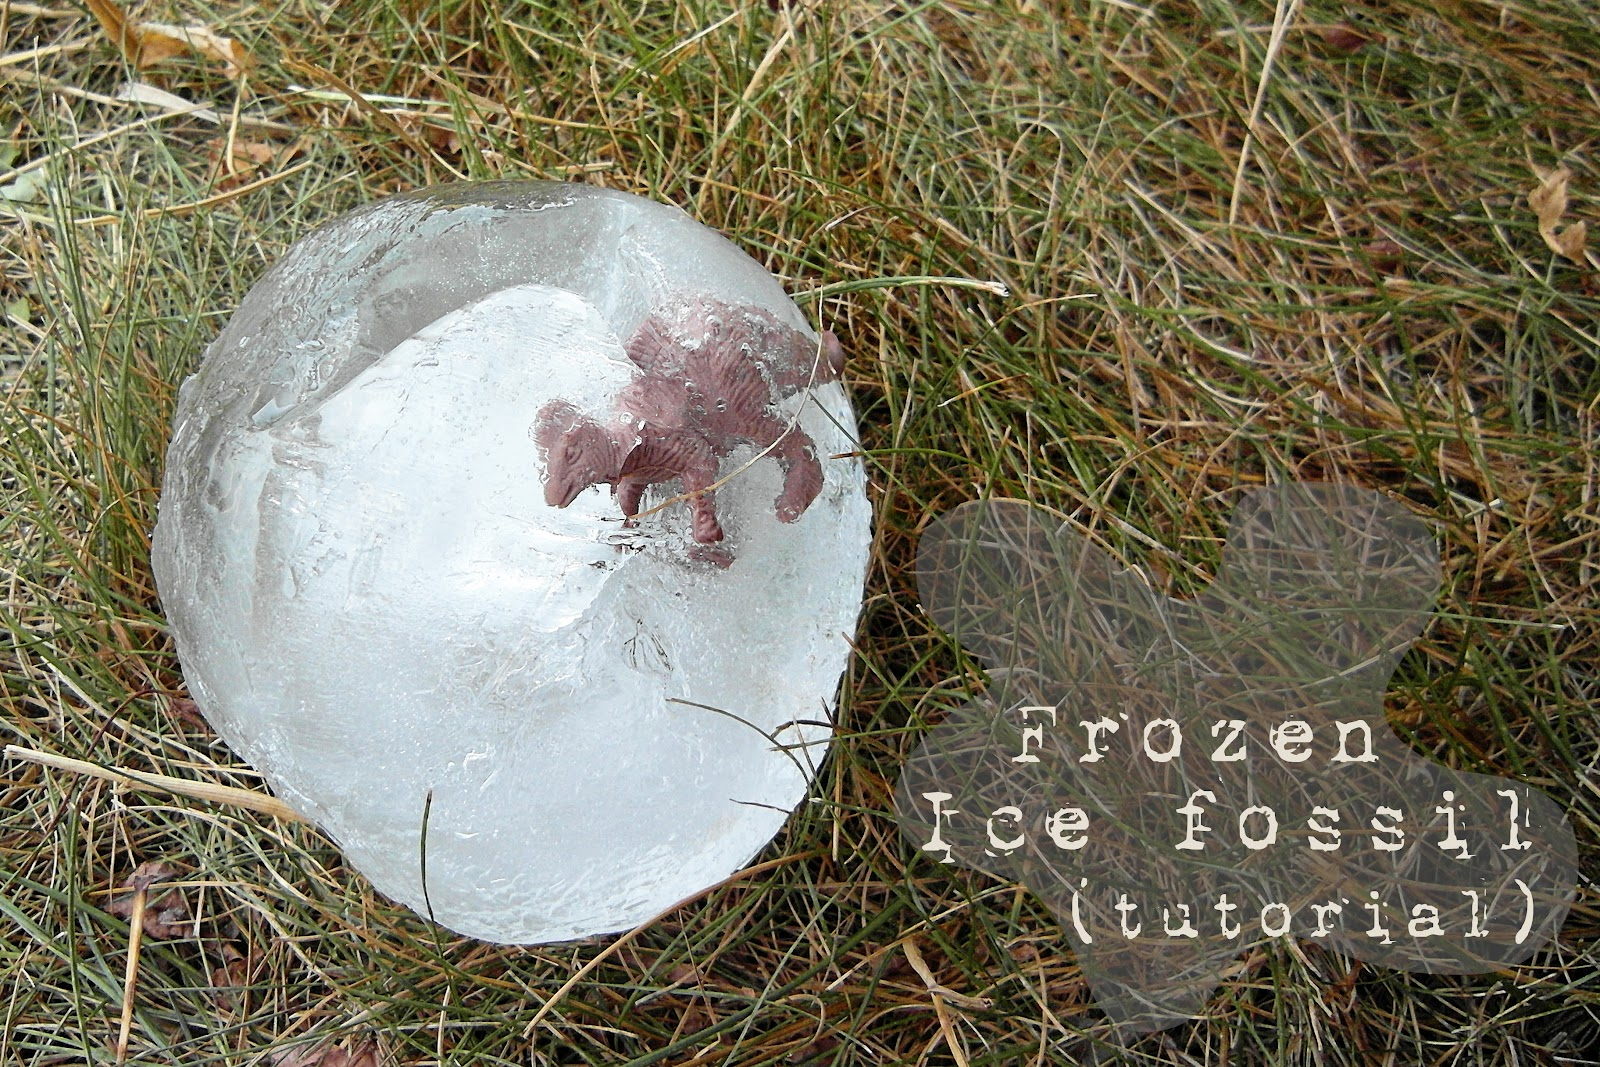 Fossil ice rocks sisters what